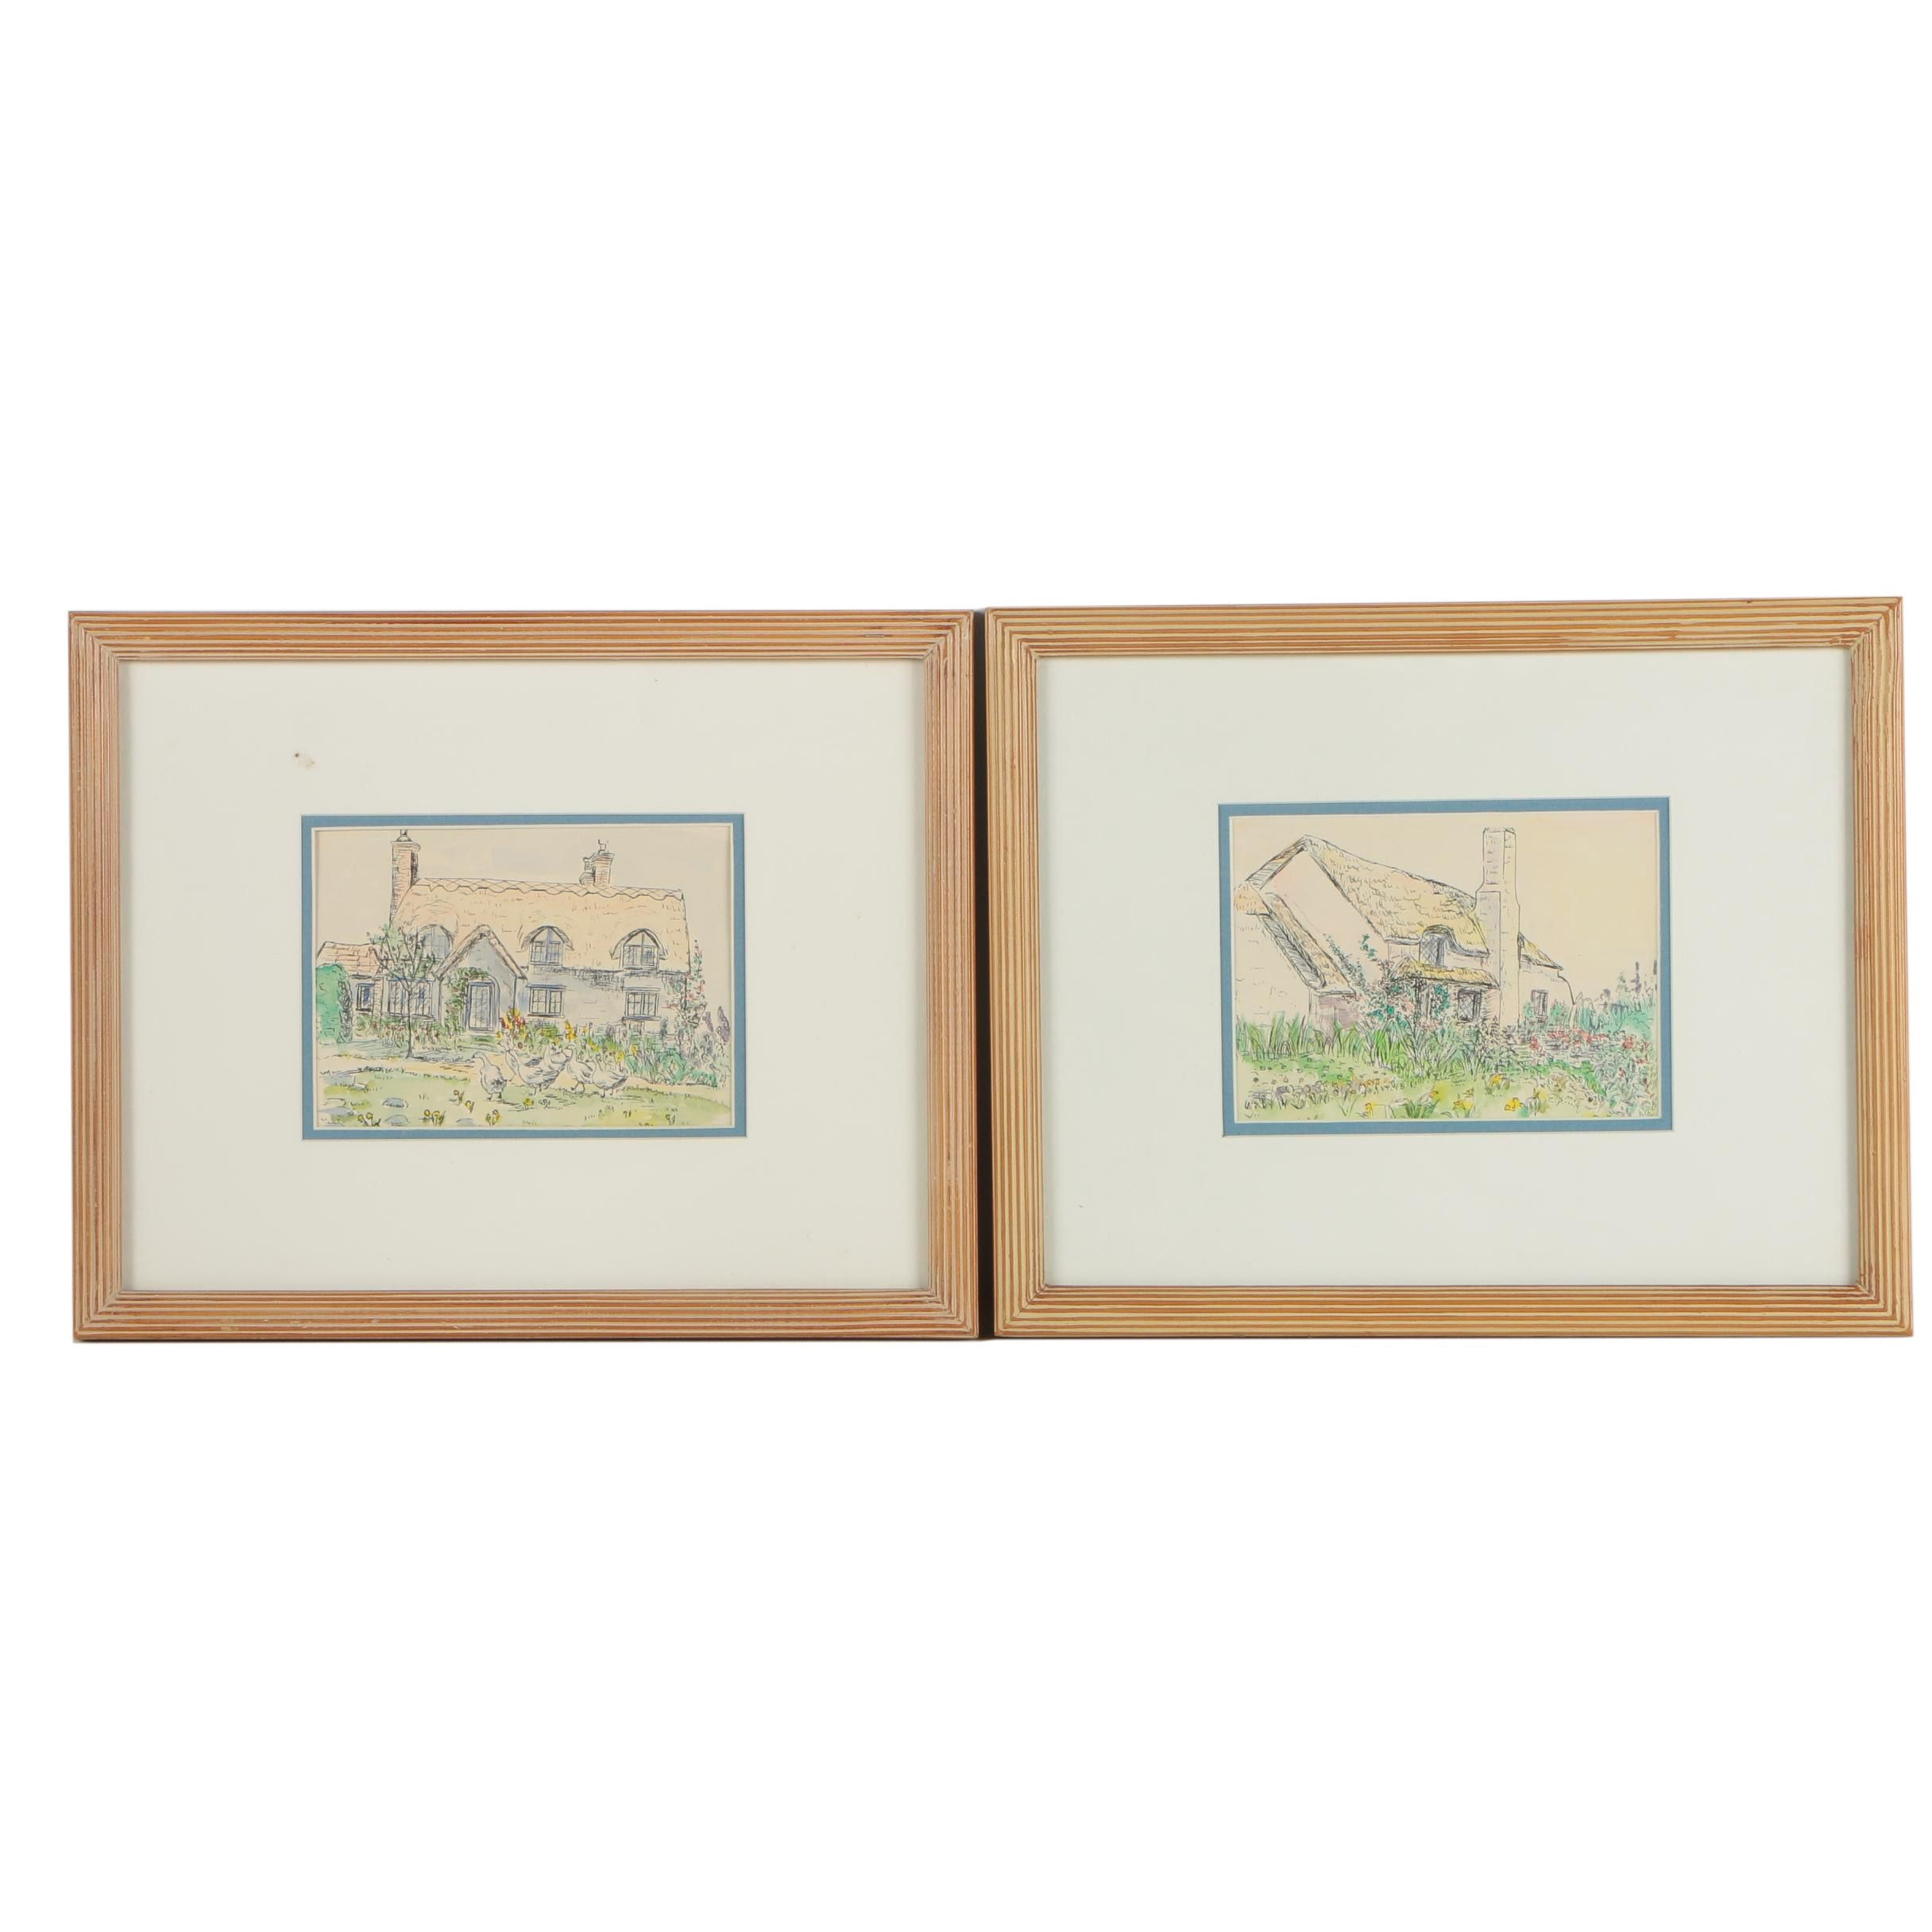 Hand Colored Lithographs Attributed to Clare Lombardo